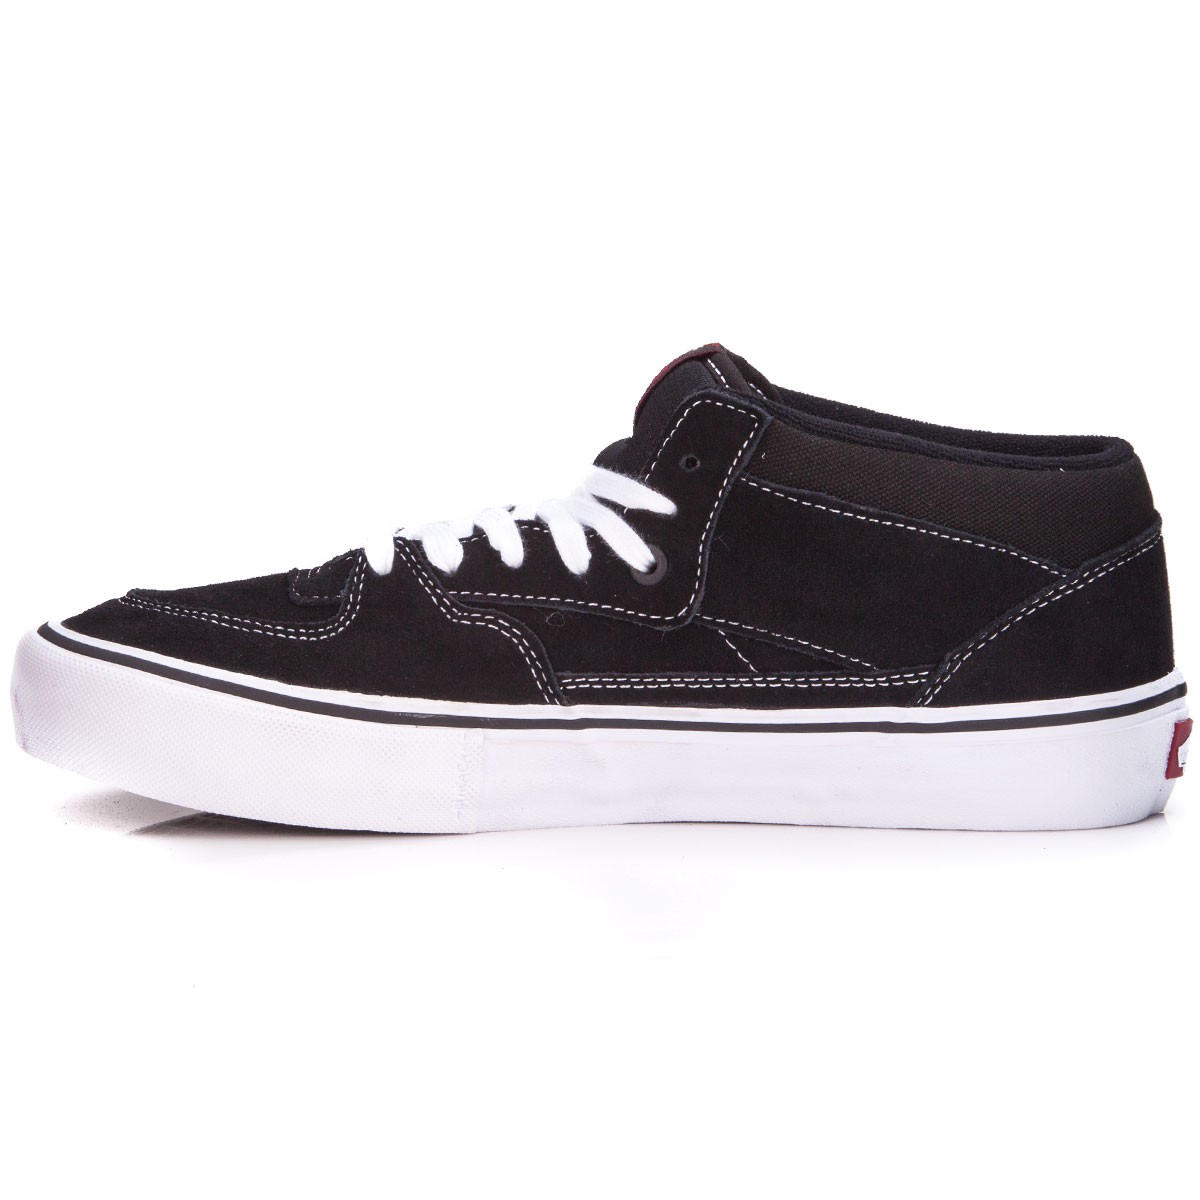 34049ee00f Vans Half Cab Pro Shoes - Black White Red - 8.0